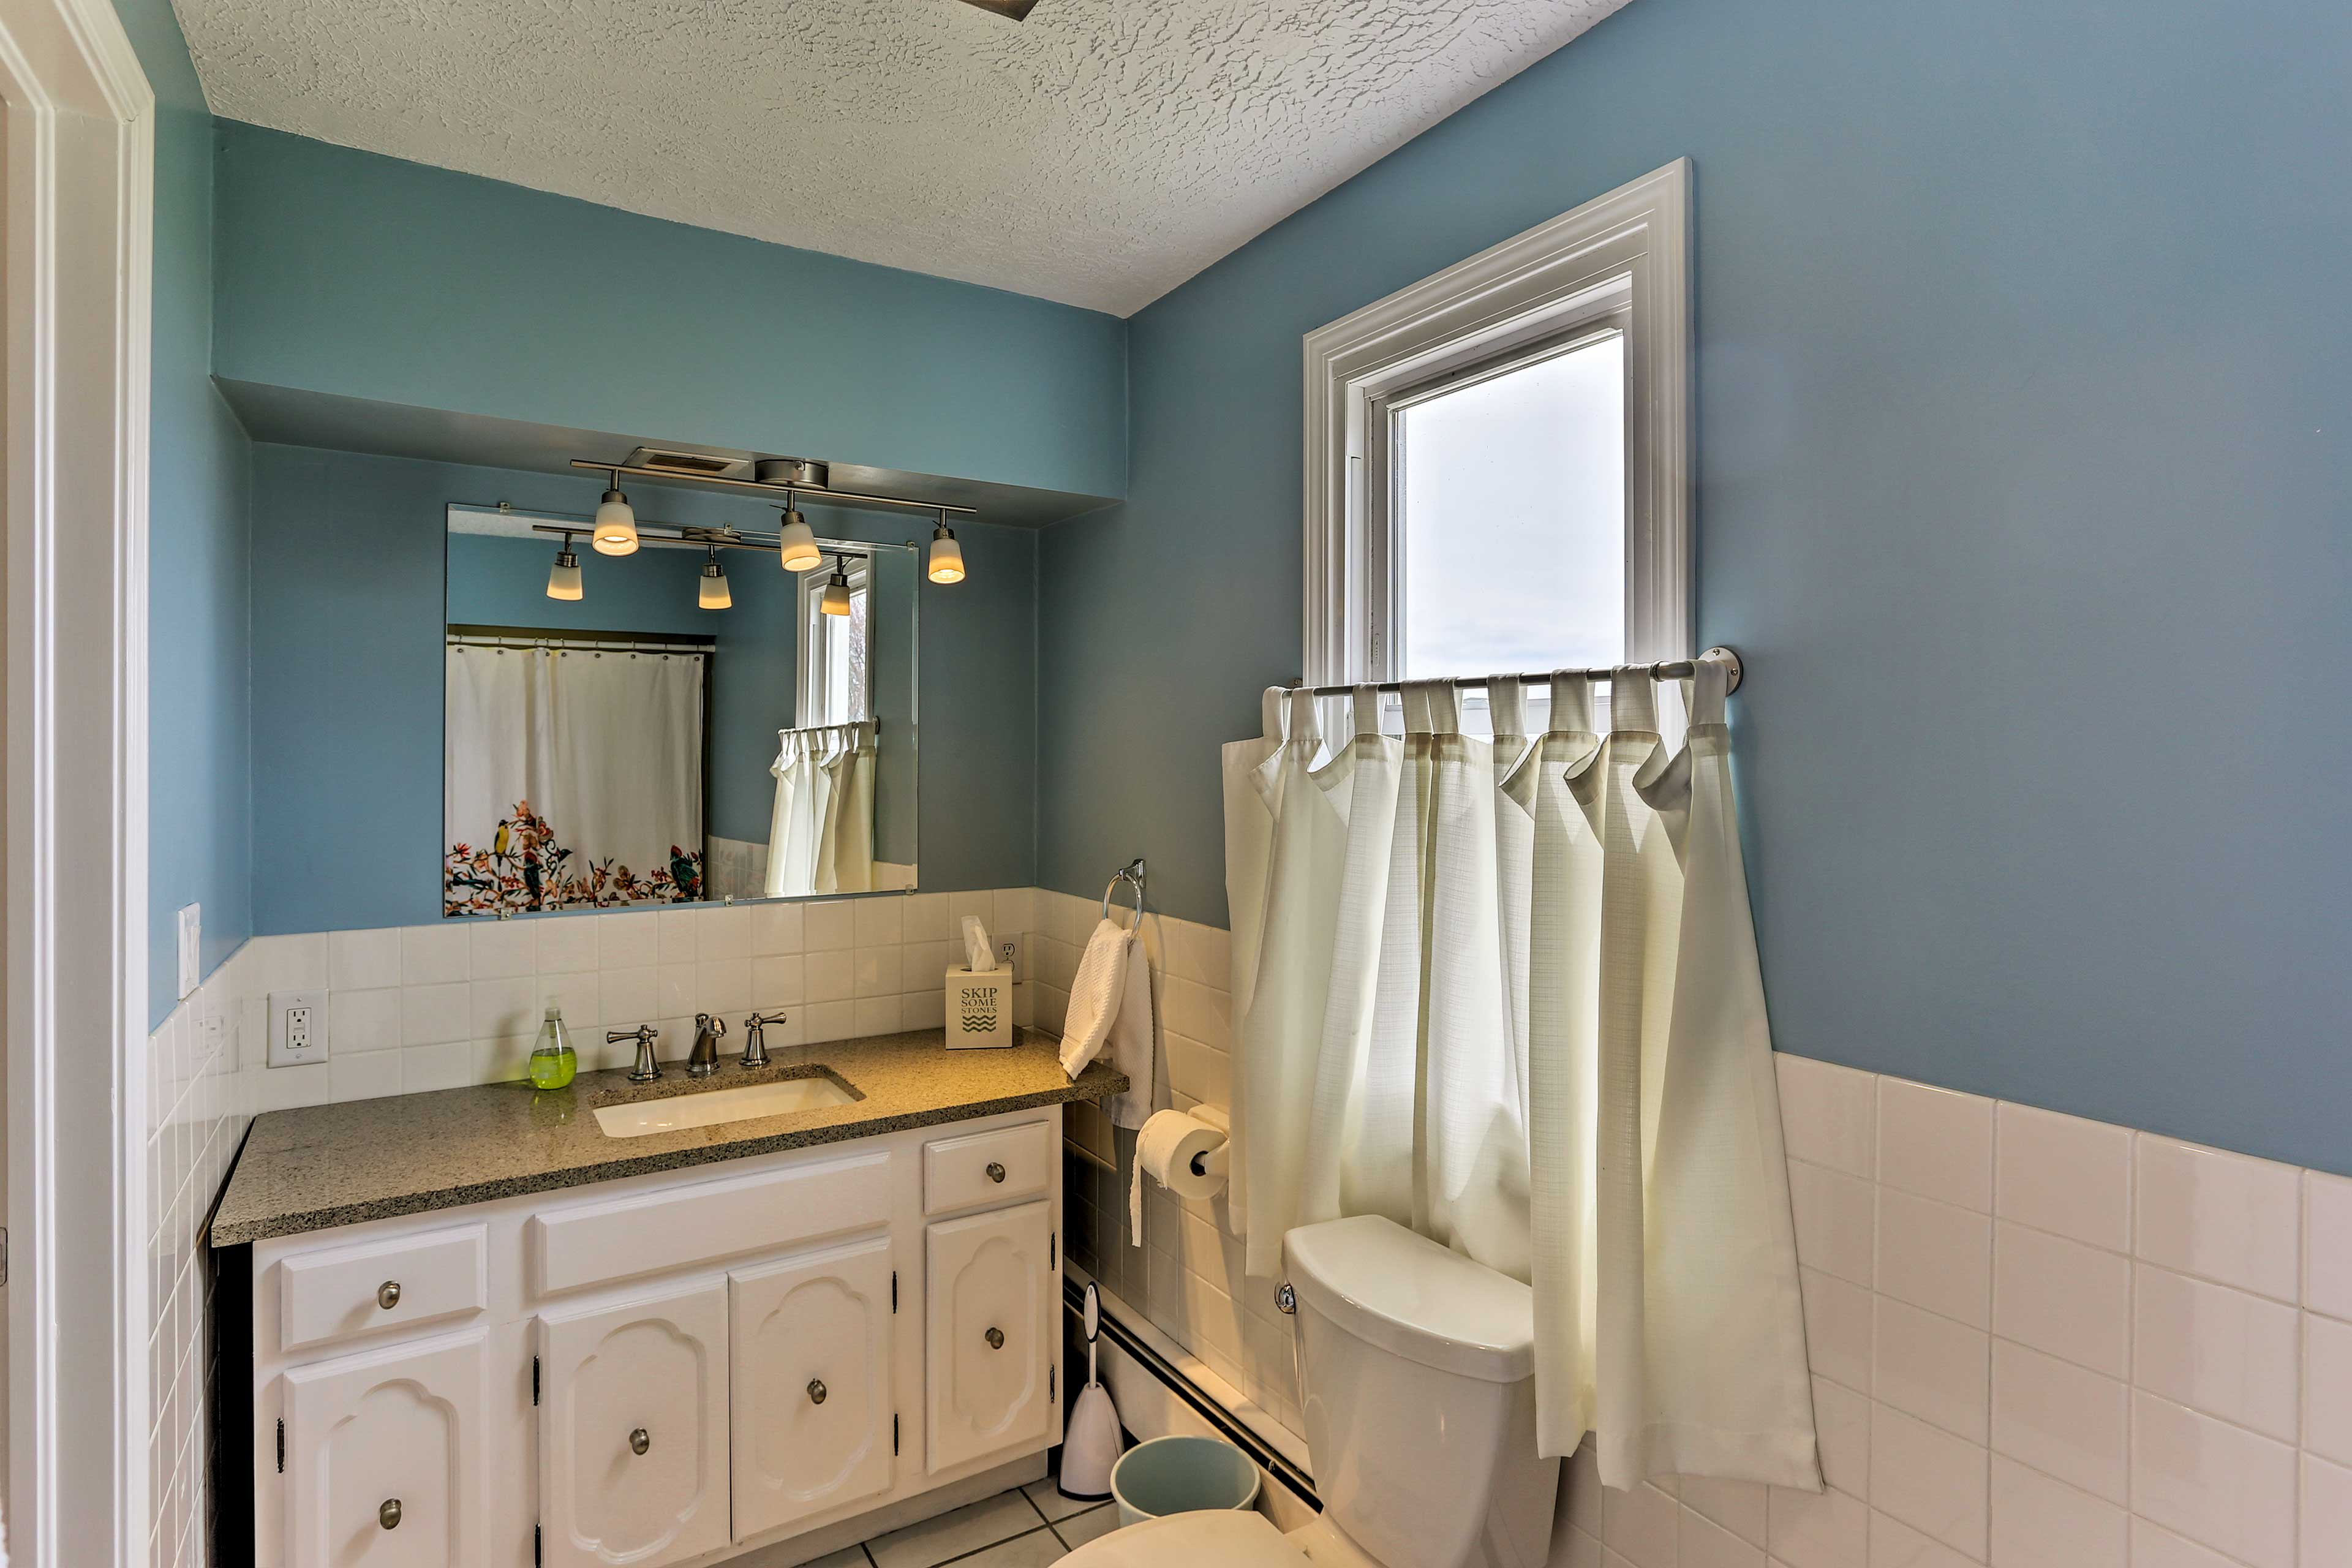 Use the large counter space to spread out your toiletries and get ready.